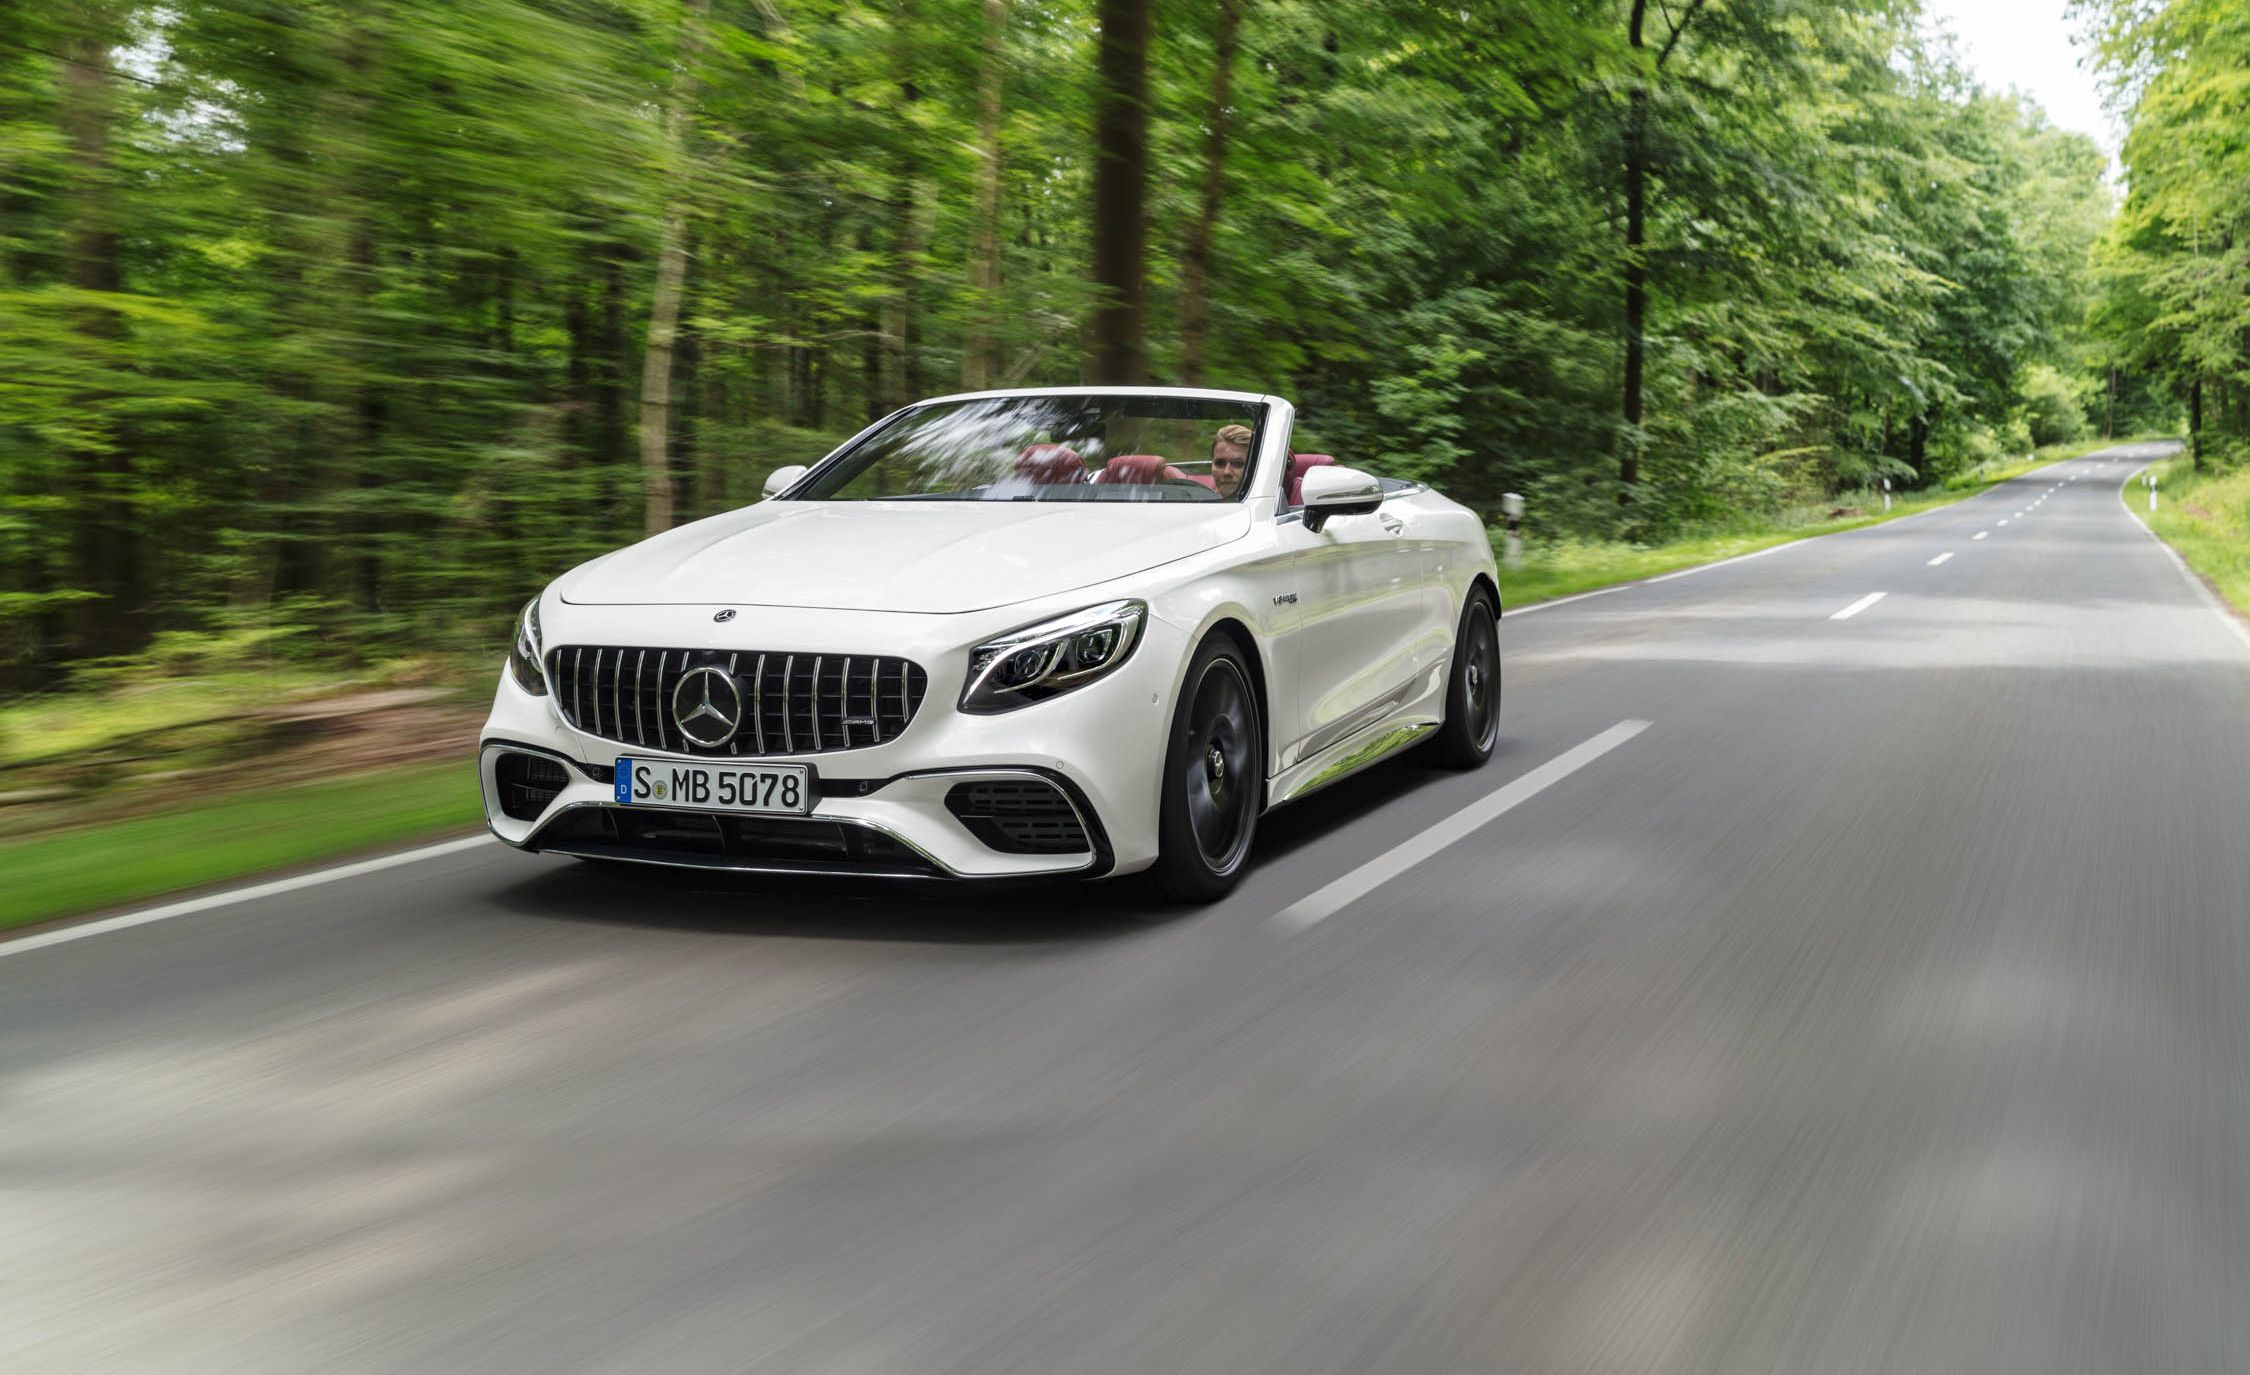 2018 Mercedes-Benz S-class Coupe and Cabriolet